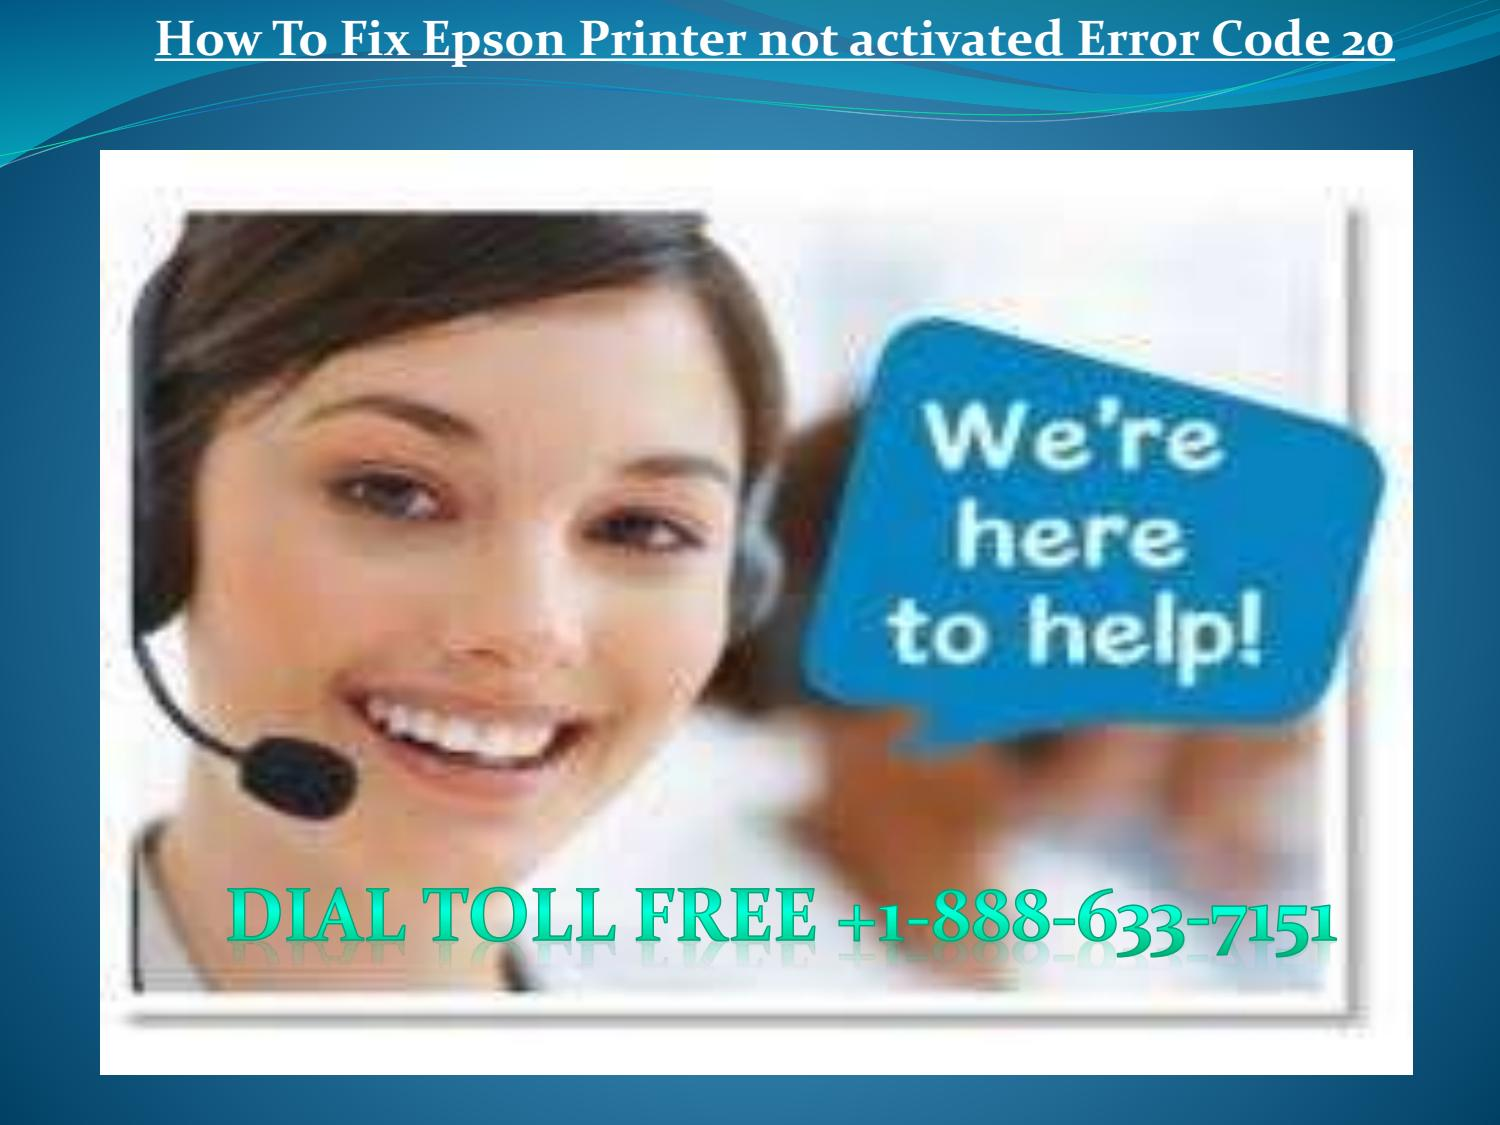 Fix Epson Pinter not activated error code 20 by Archer smith